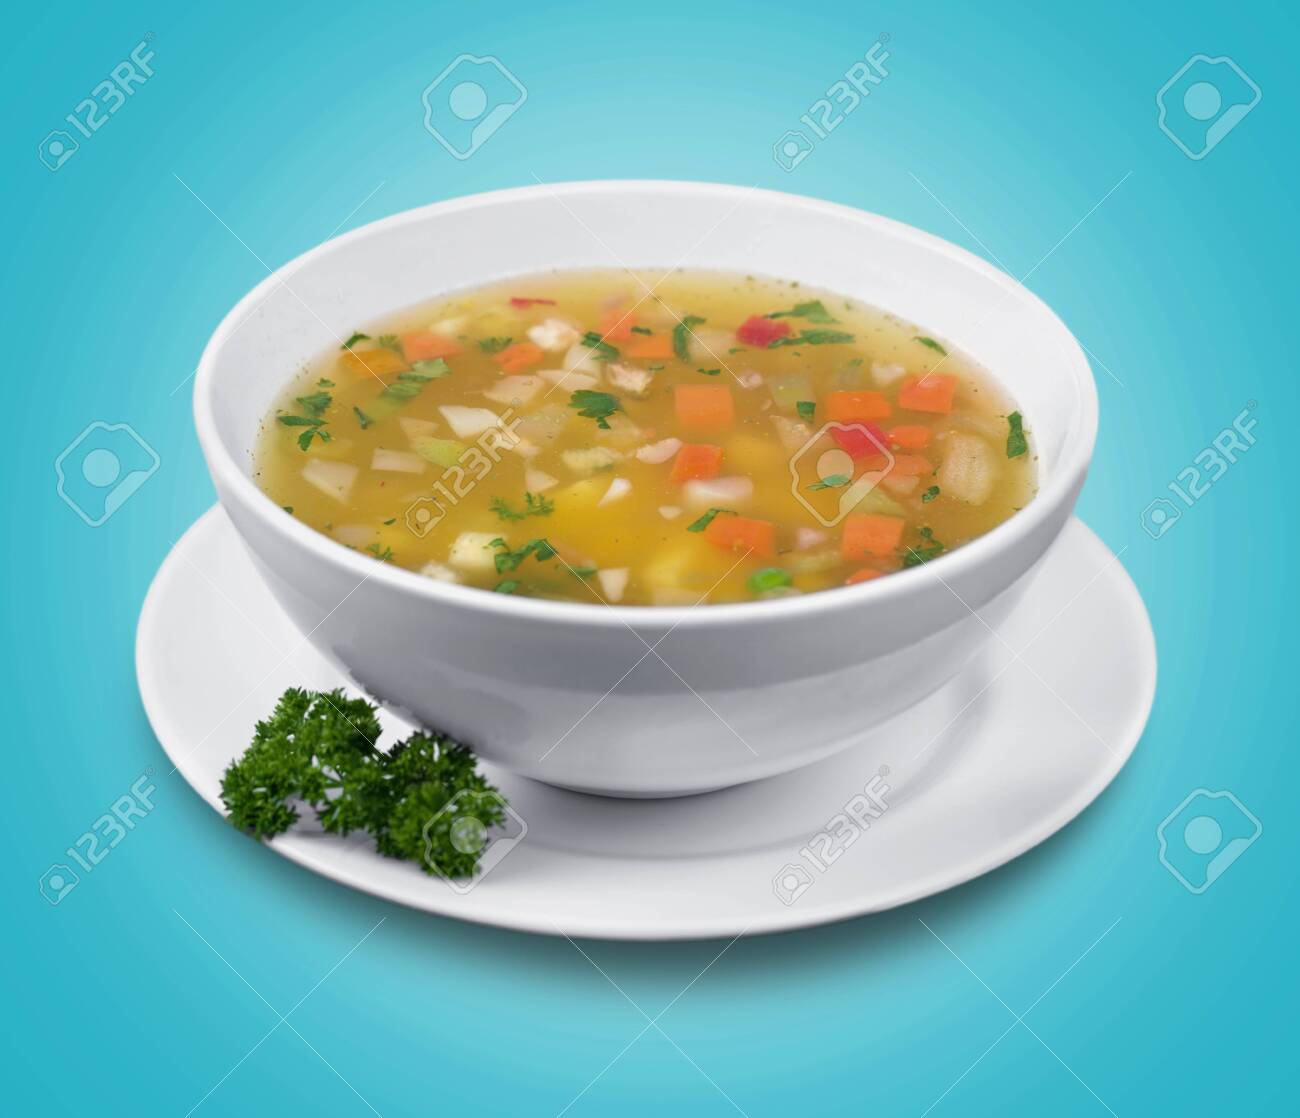 Bowl of delicious vegetables soup on table - 128709565